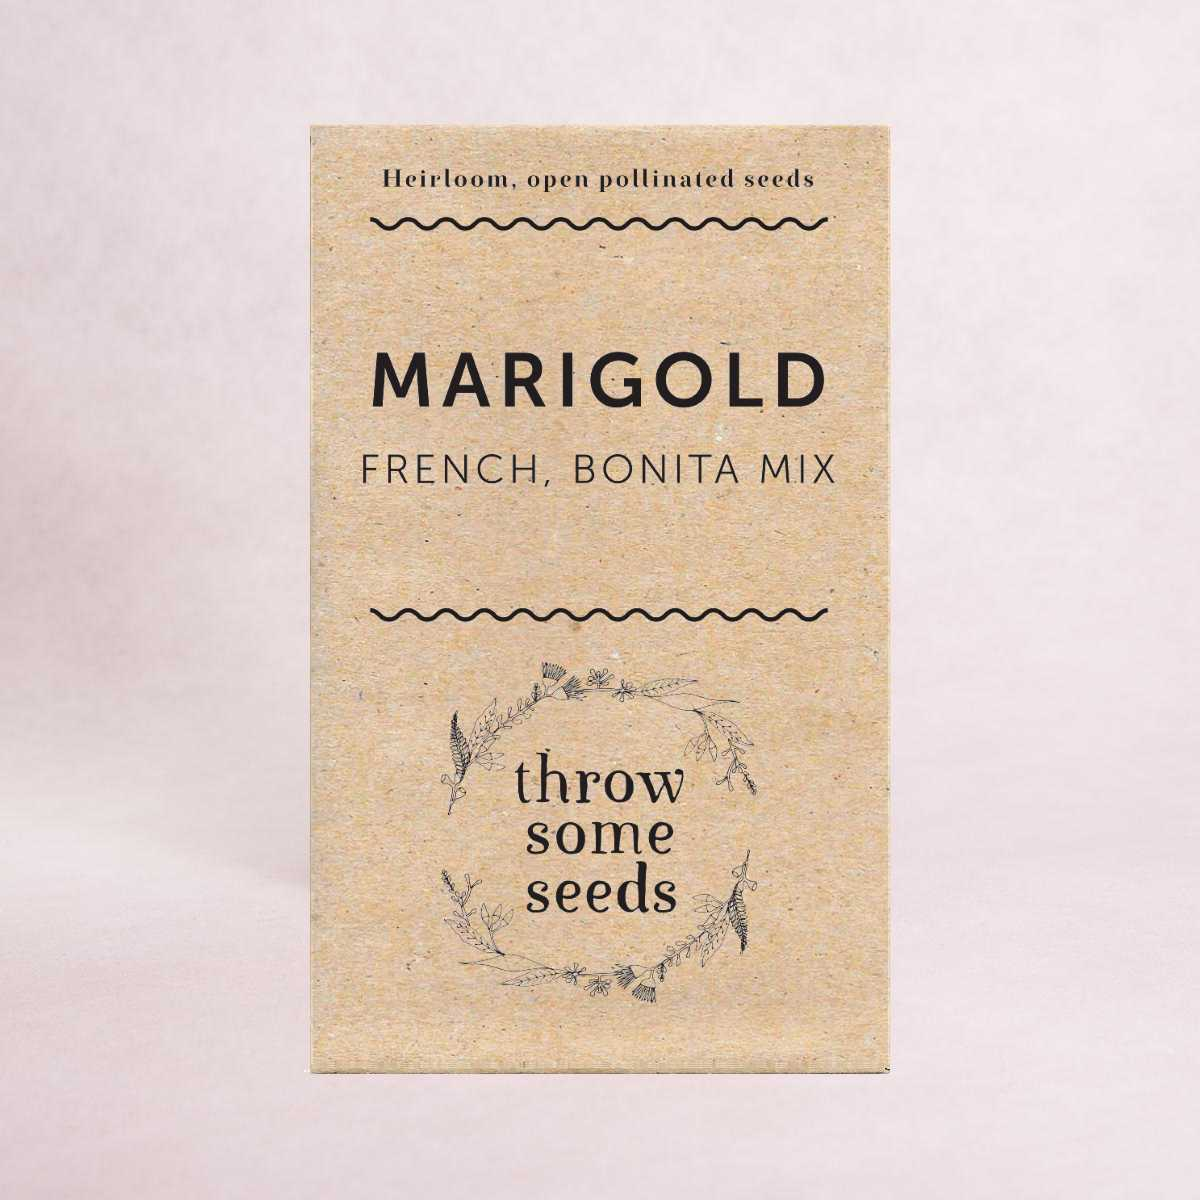 Marigold (French, Bonita Mix) Seeds - Seeds - Throw Some Seeds - Australian gardening gifts and eco products online!